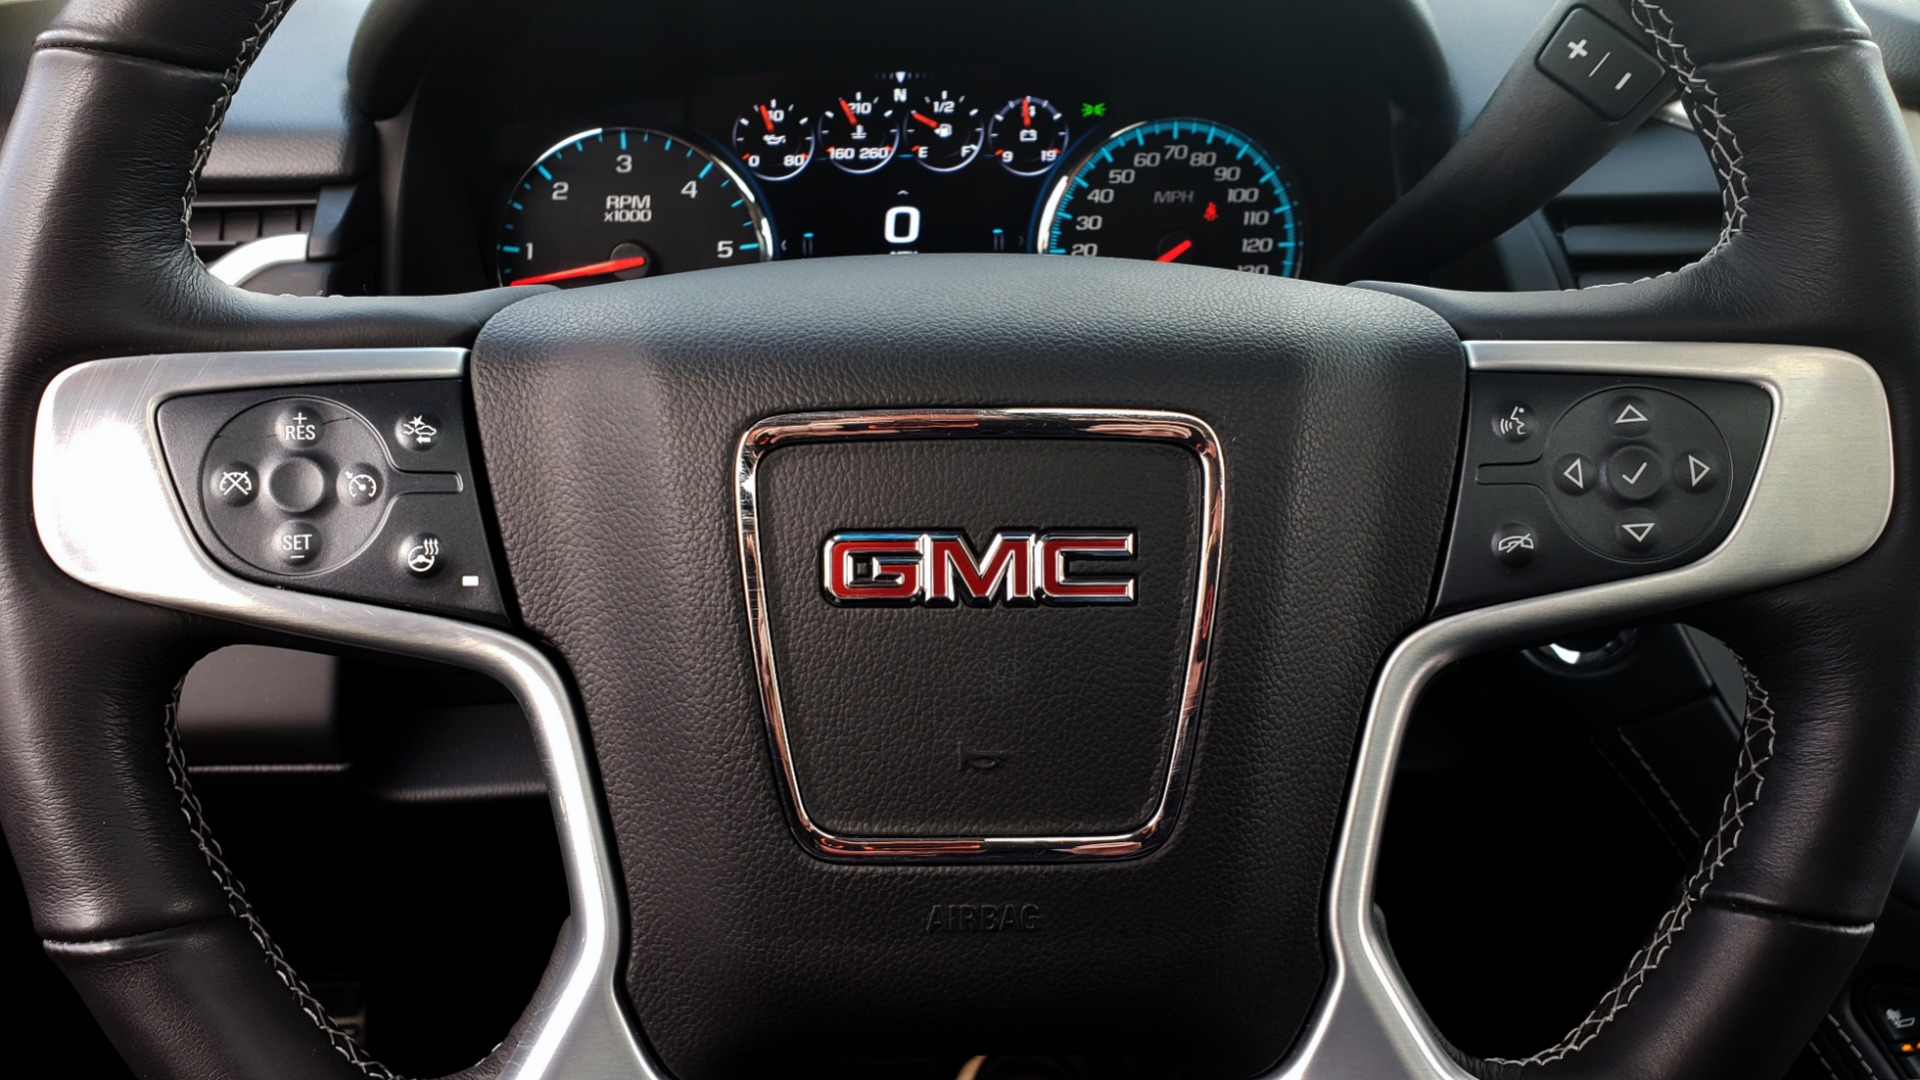 Used 2017 GMC YUKON XL SLT 4X4 / NAV / SUNROOF / BOSE / 3-ROW / REARVIEW for sale Sold at Formula Imports in Charlotte NC 28227 46